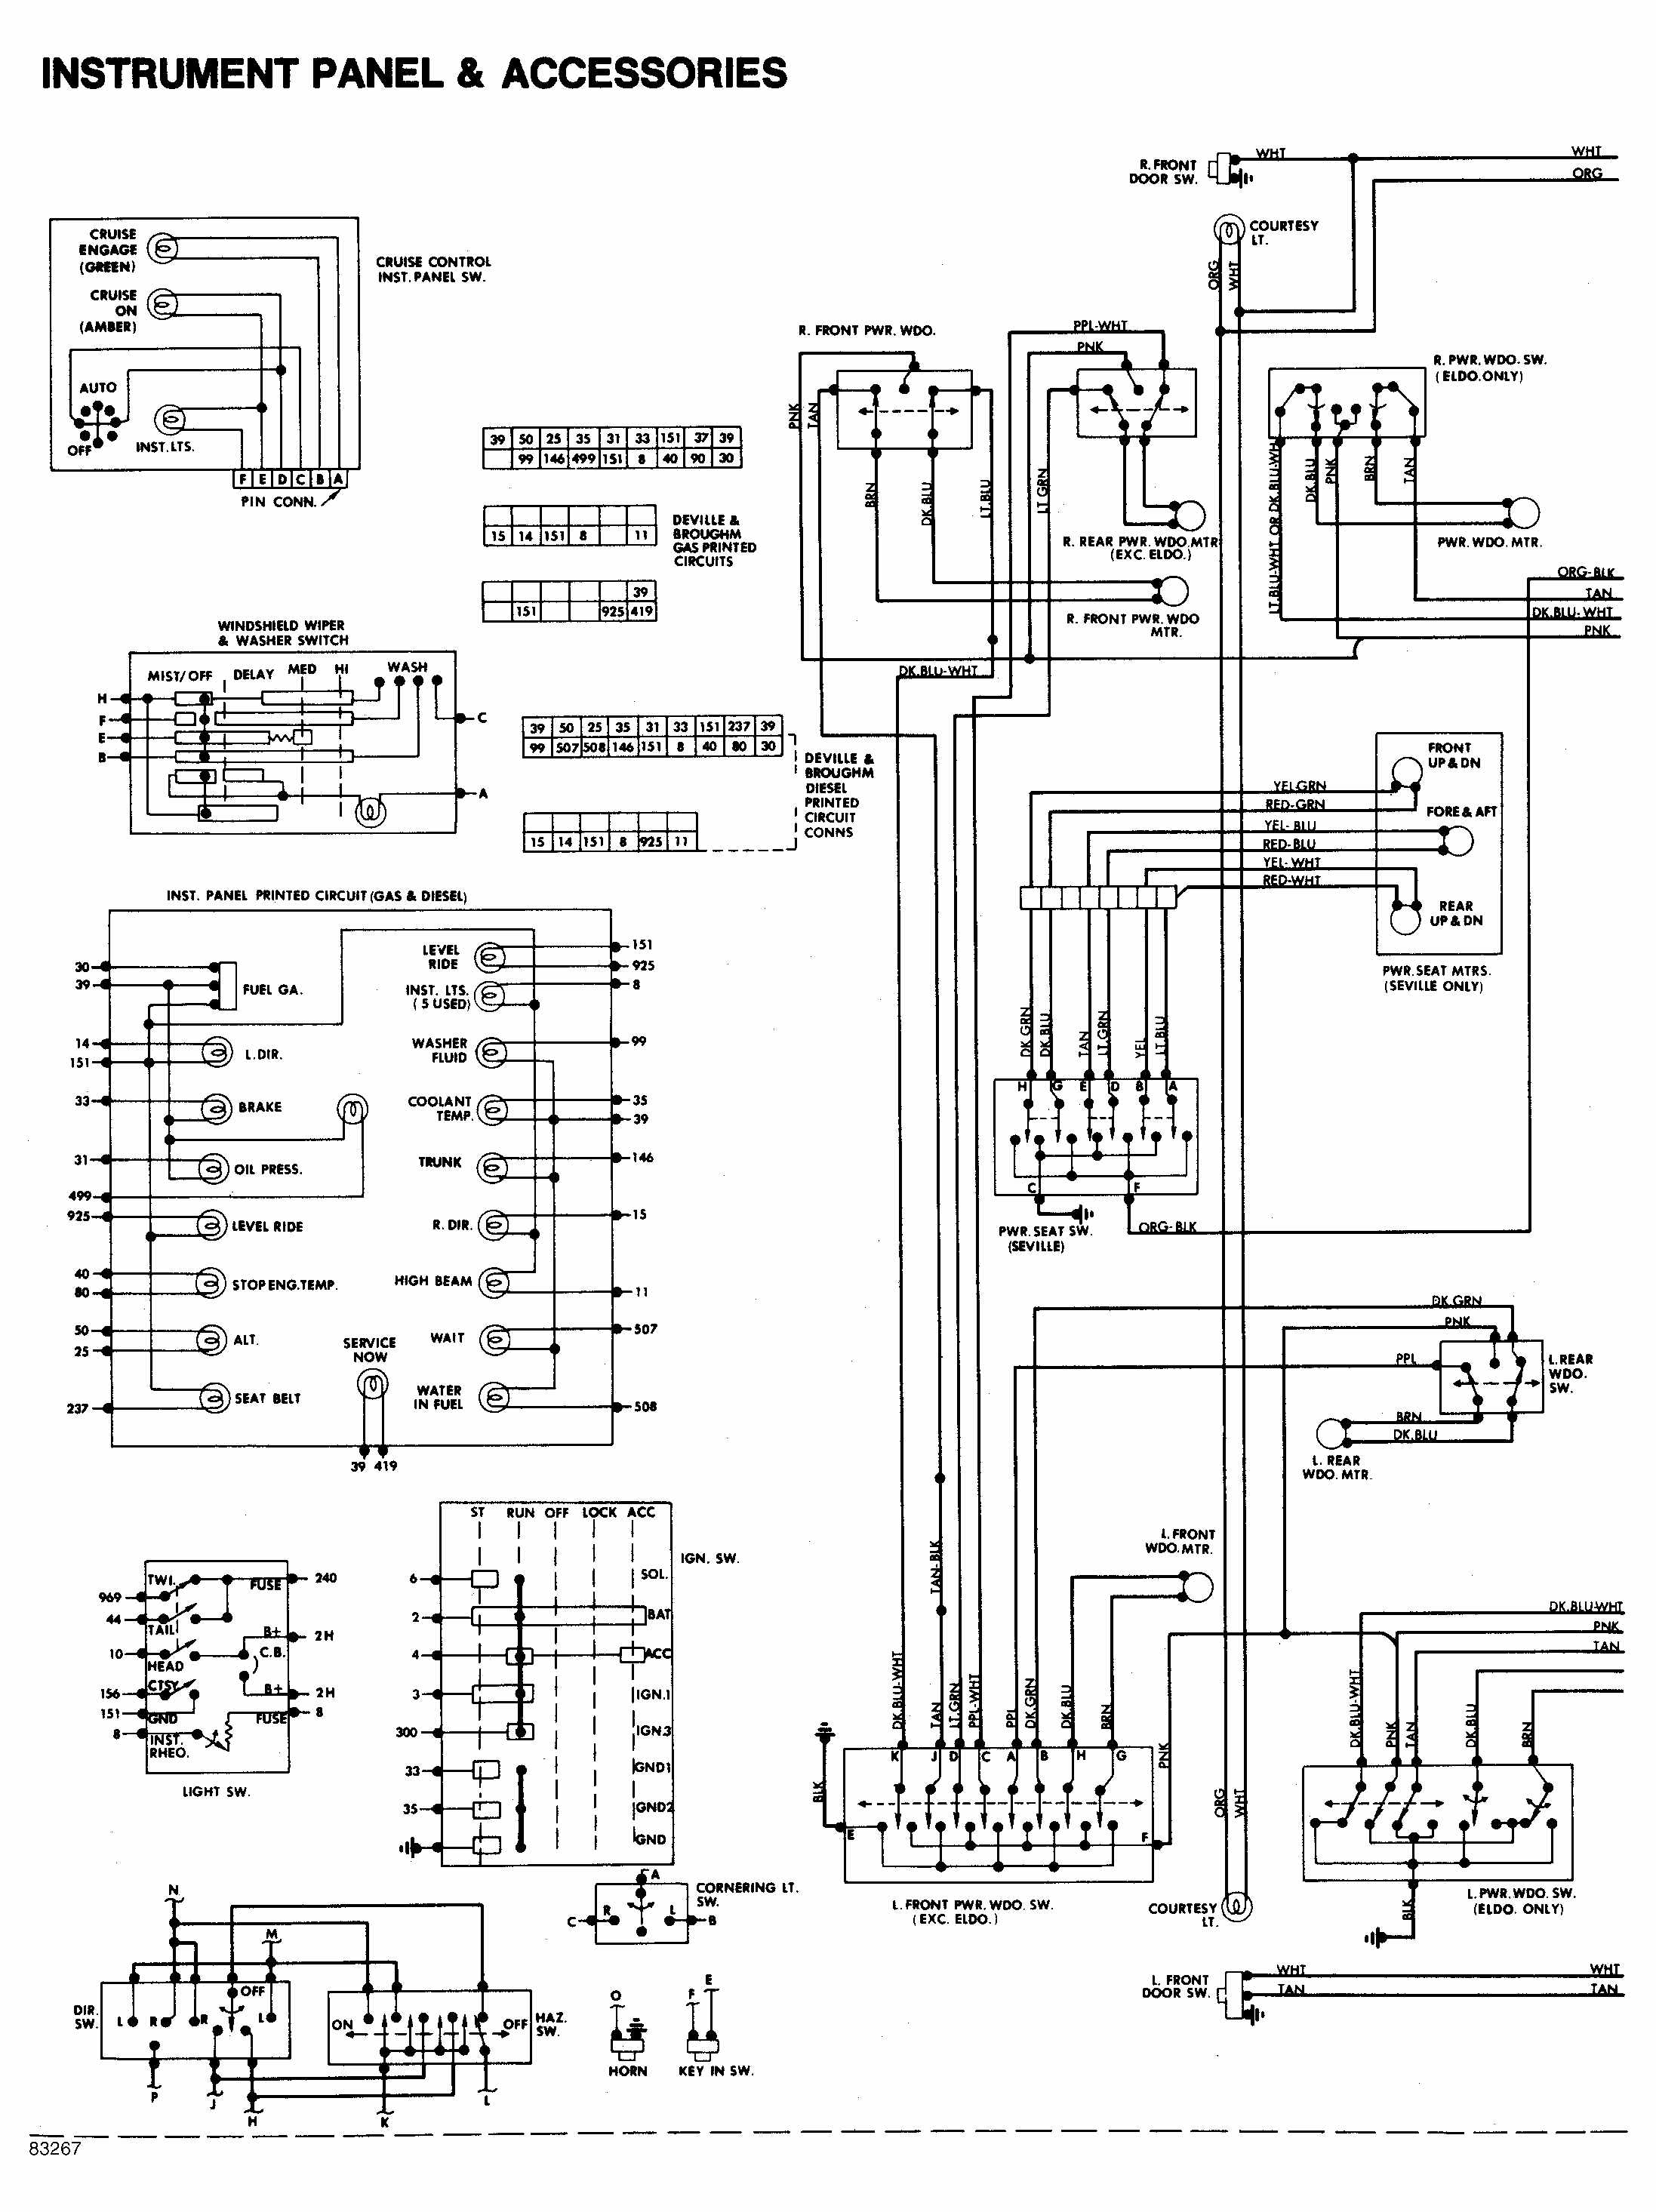 mustang diagrams of engine compartment fuse box i will 1970 ford